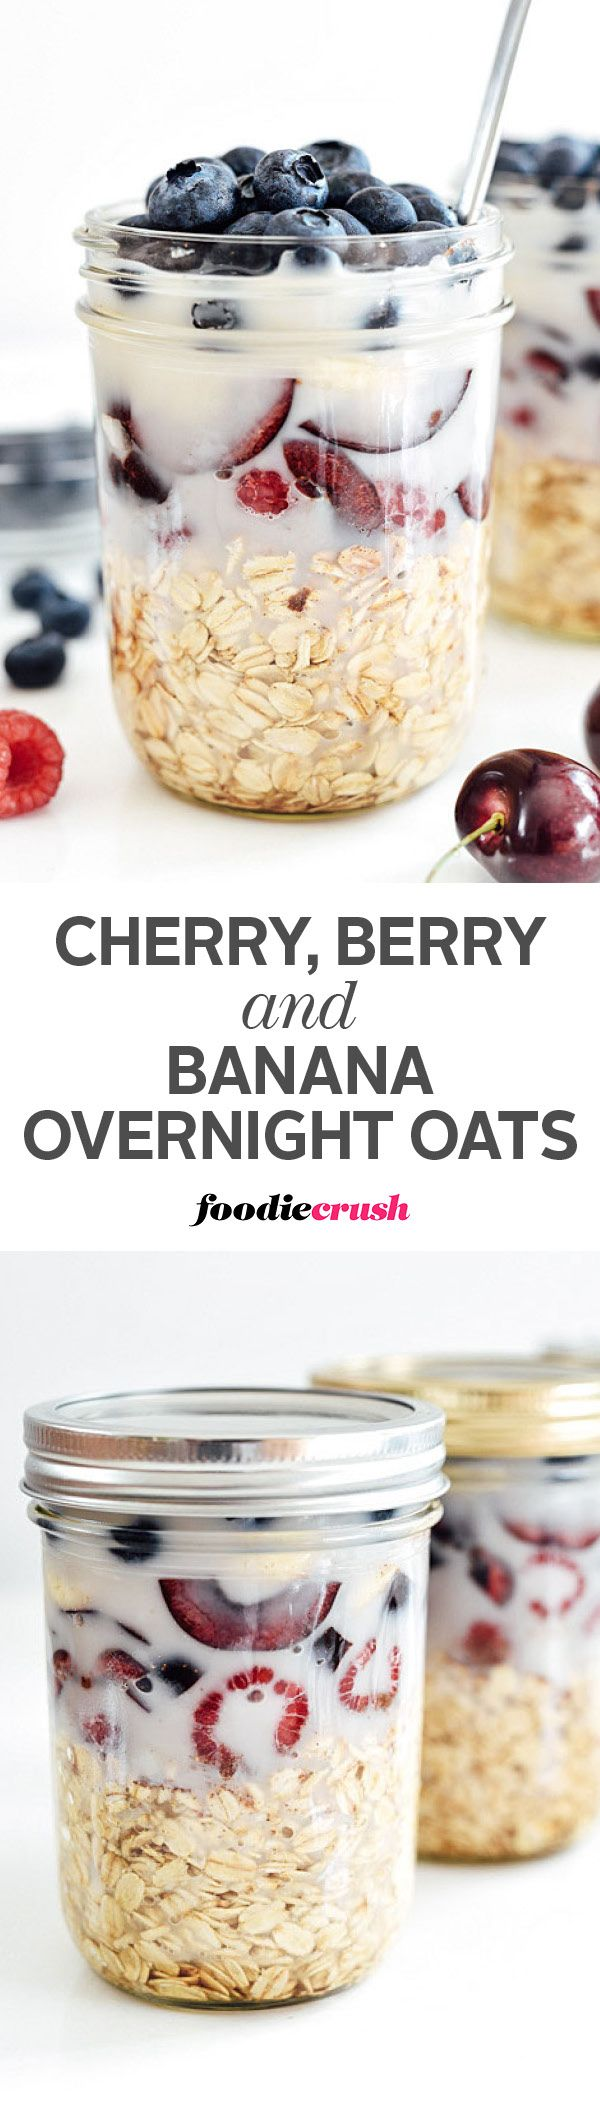 Oats, berries, cherries and banana soak in almond milk overnight in the refrigerator to create a no-cook red, white and blue layered on-the-go breakfast   foodiecrush.com